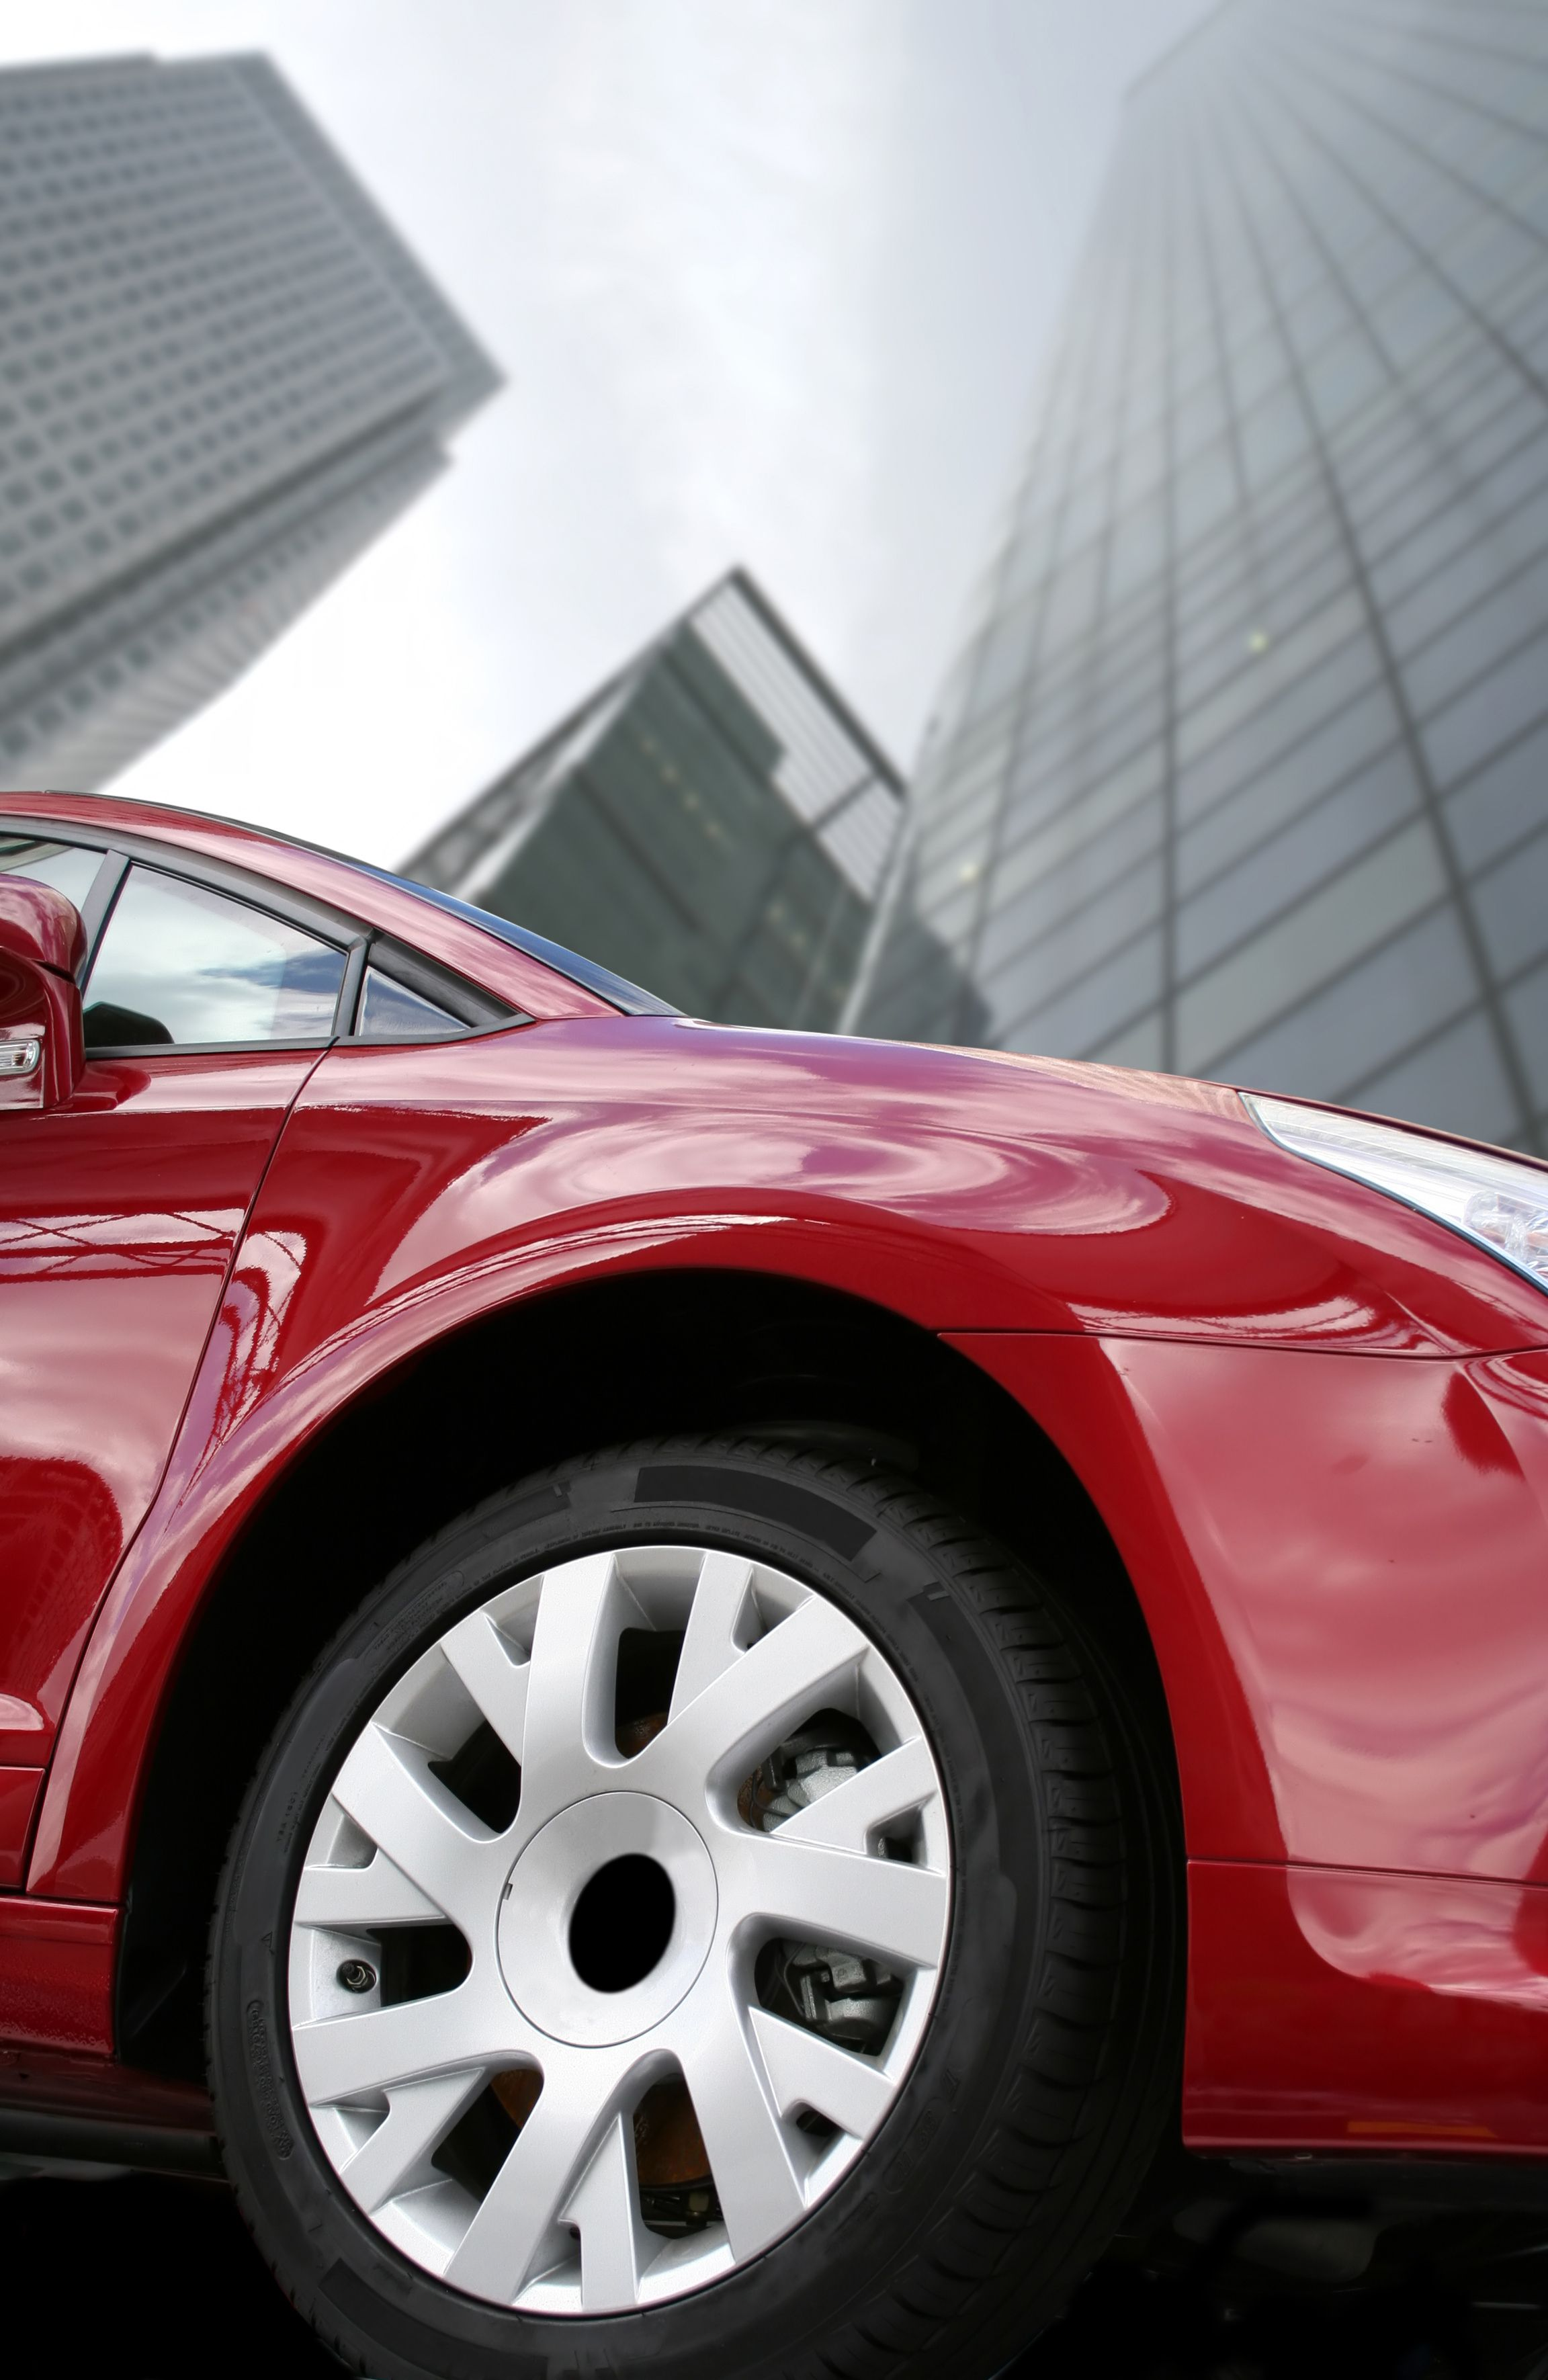 Executive Cars For London To Luton Heathrow To Luton With Images